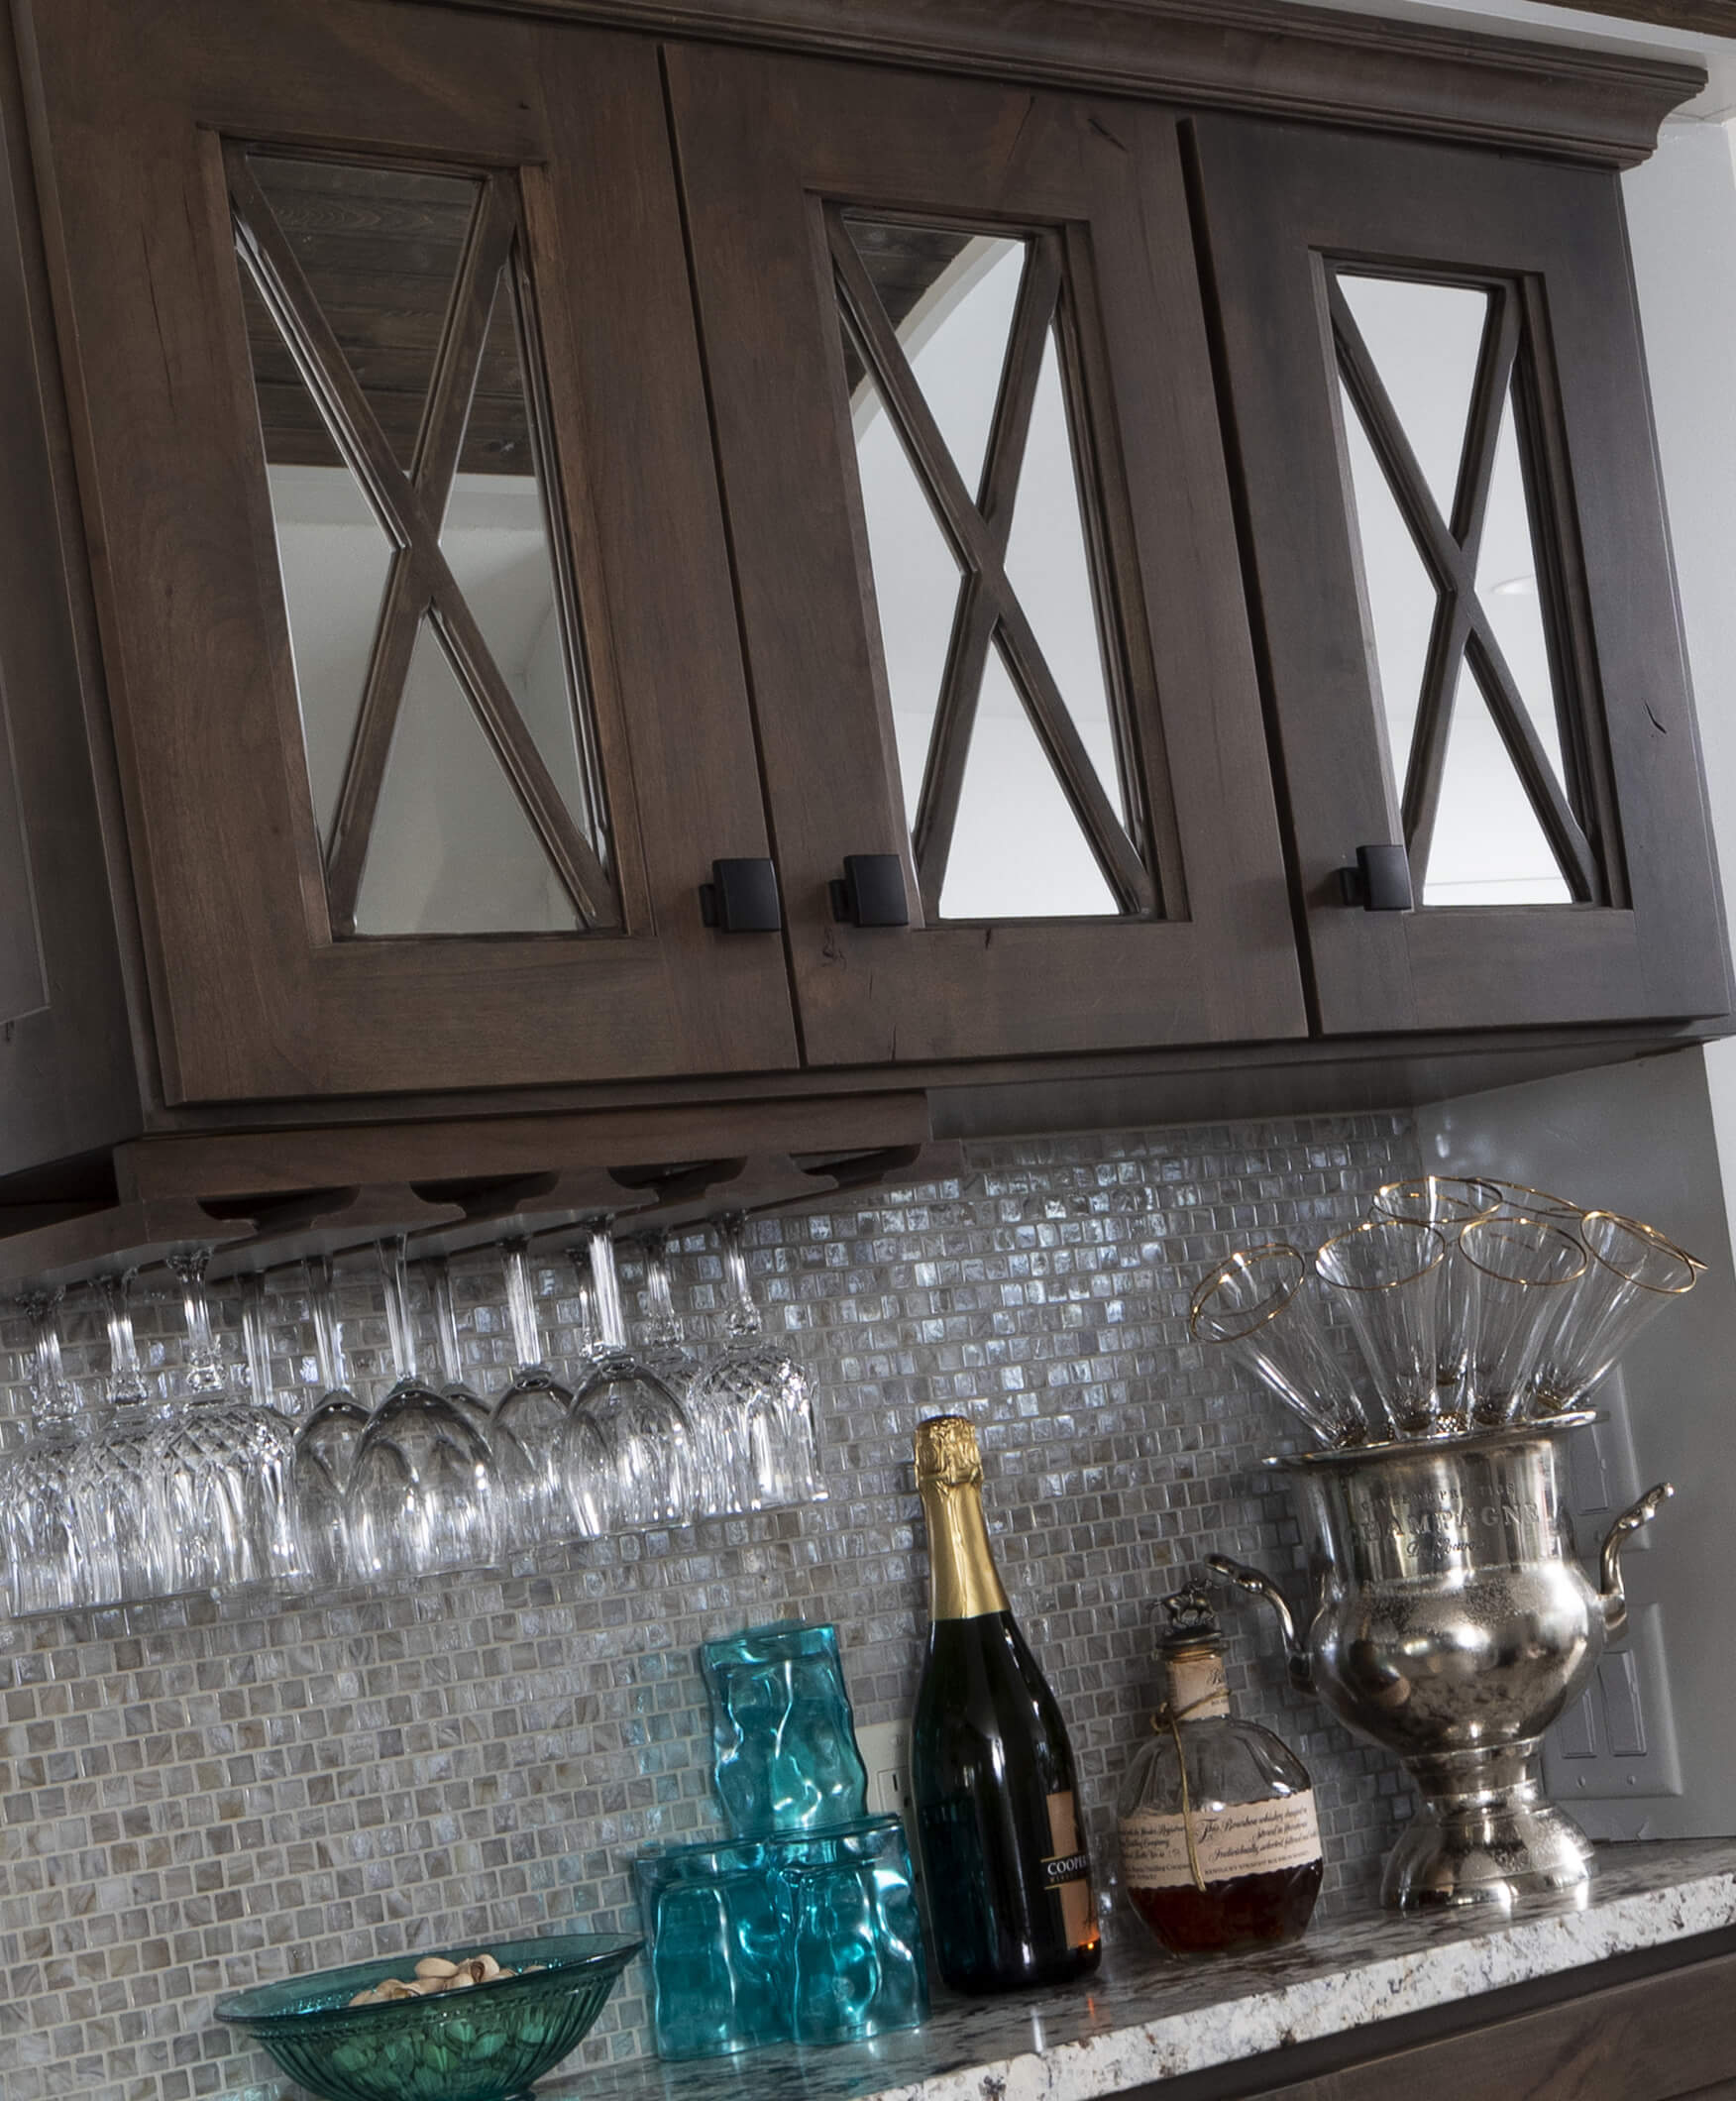 A close up of dark stained cabinets with mirror mullion cabinet doors.